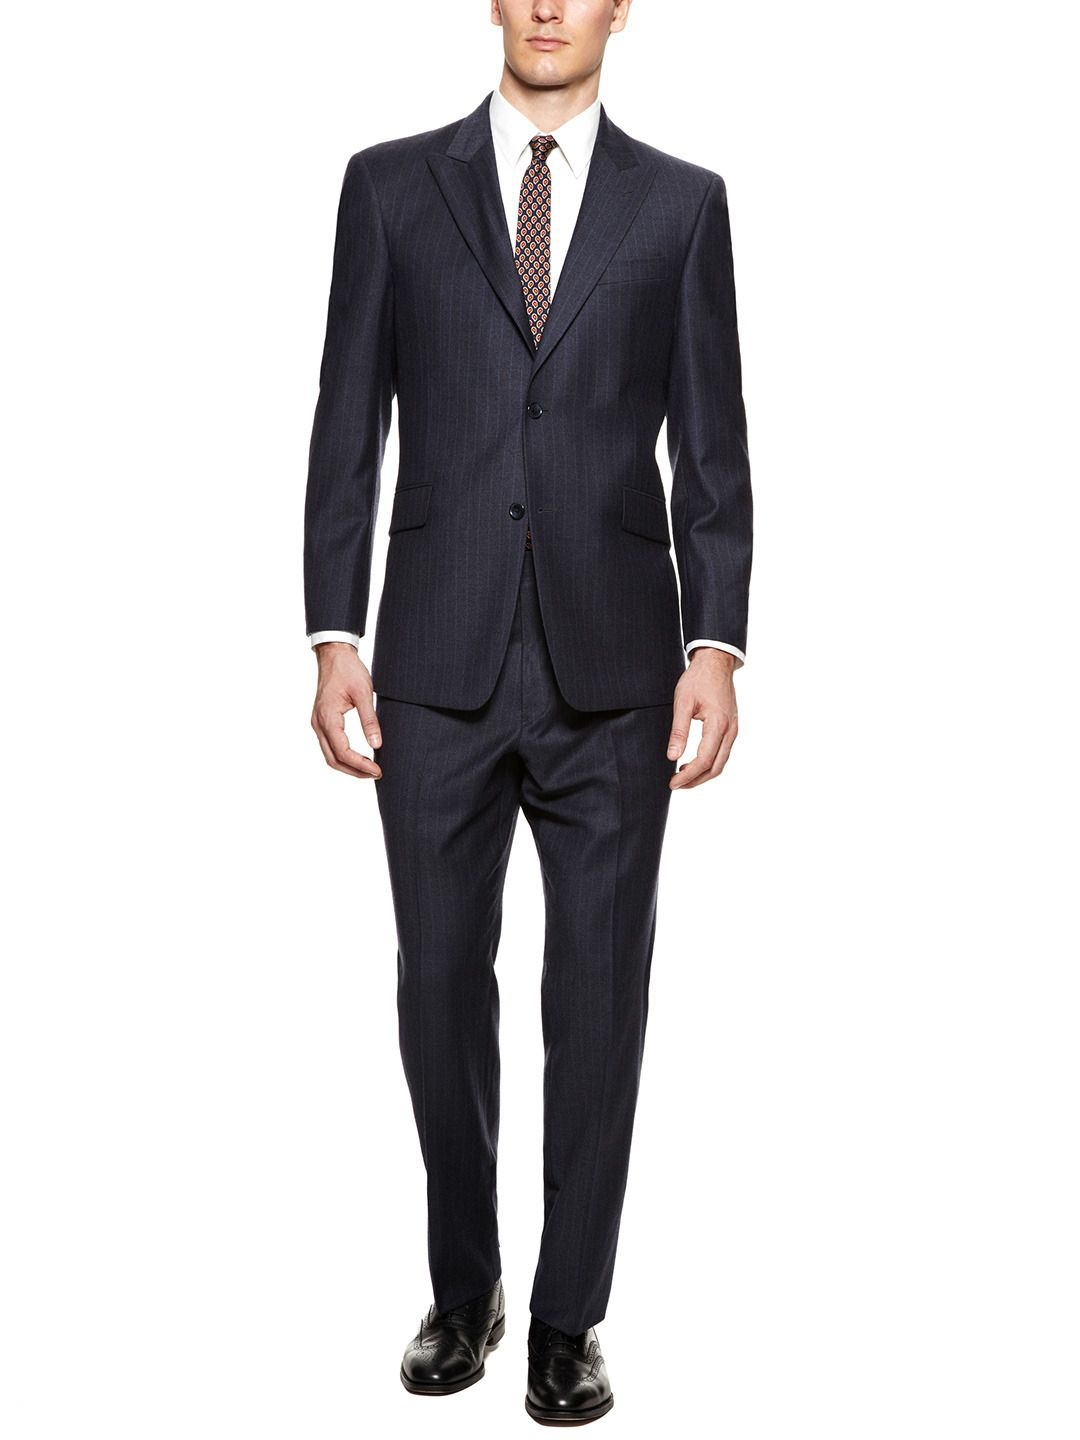 Joseph Pinstripe Suit by Tommy Hilfiger Suiting at Gilt